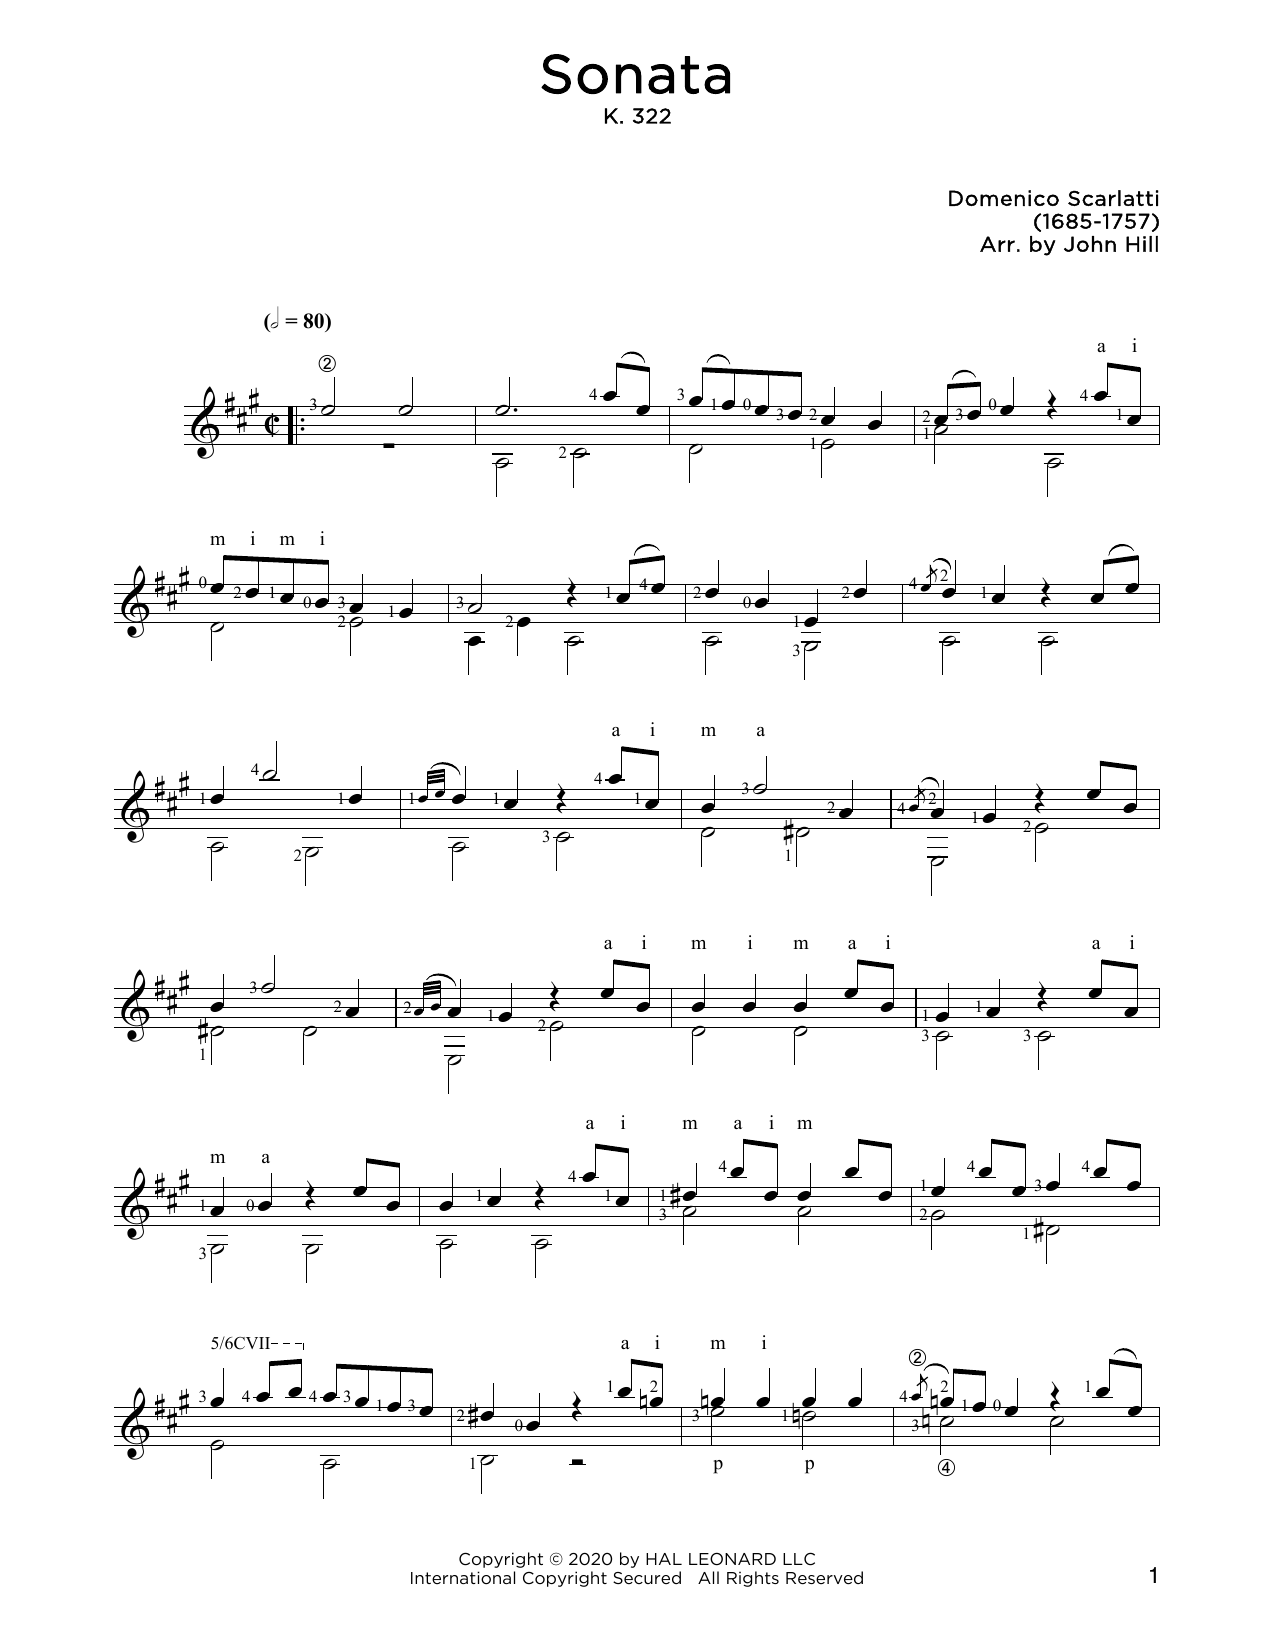 Domenico Scarlatti Sonata In A sheet music notes and chords. Download Printable PDF.